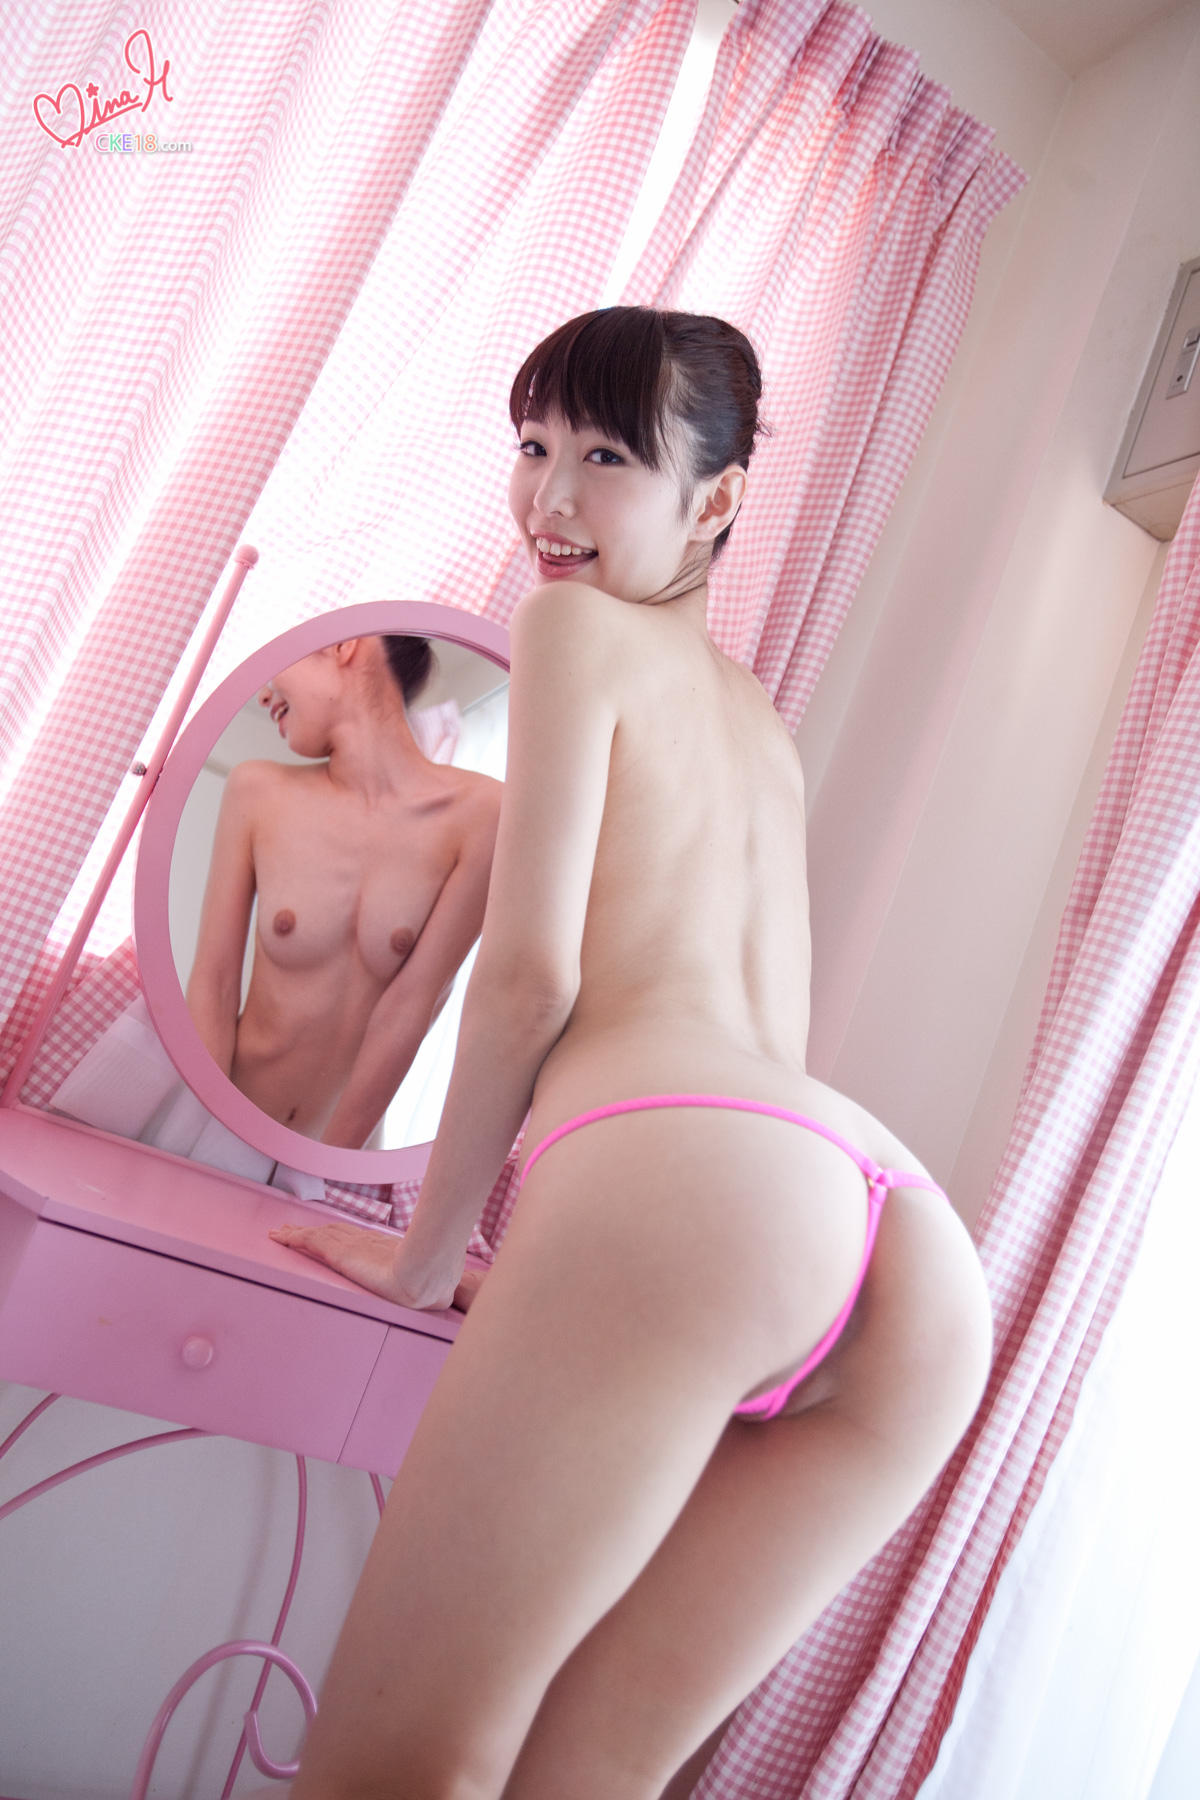 japanese women nude photos Skinny